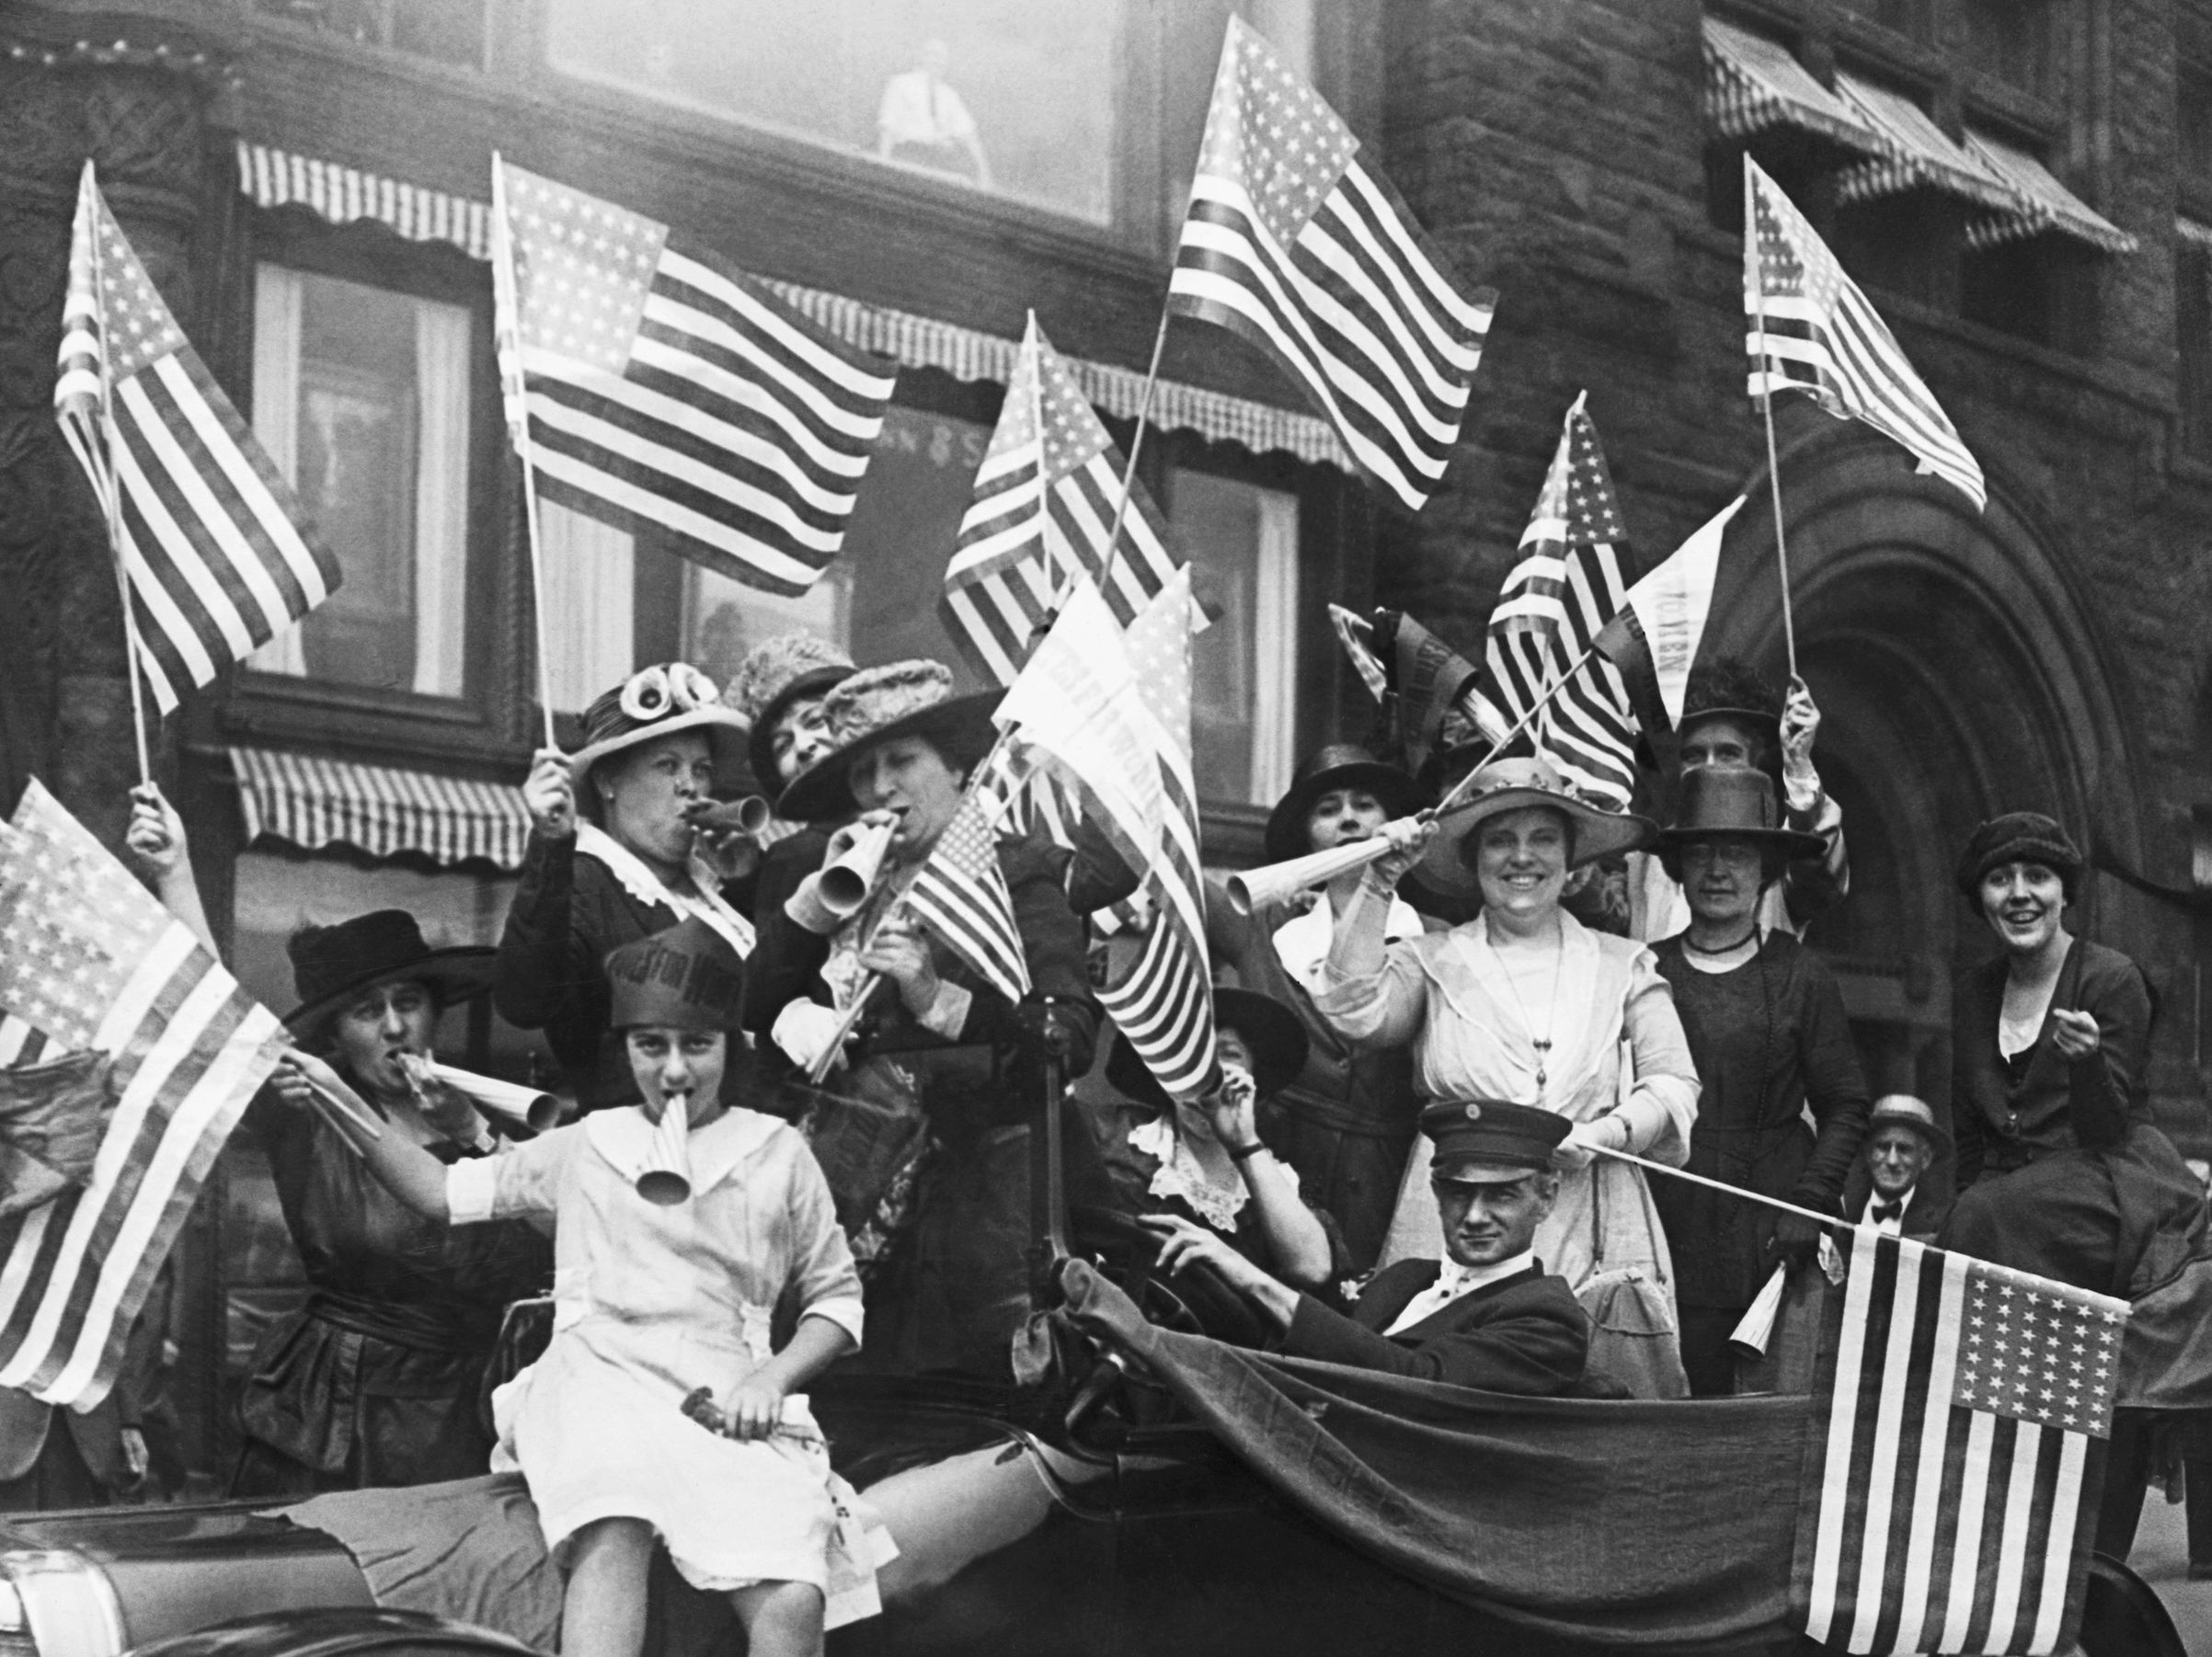 American suffragists hold a jubilee celebrating their victory following the passing of the 19th Amendment in August 1920.